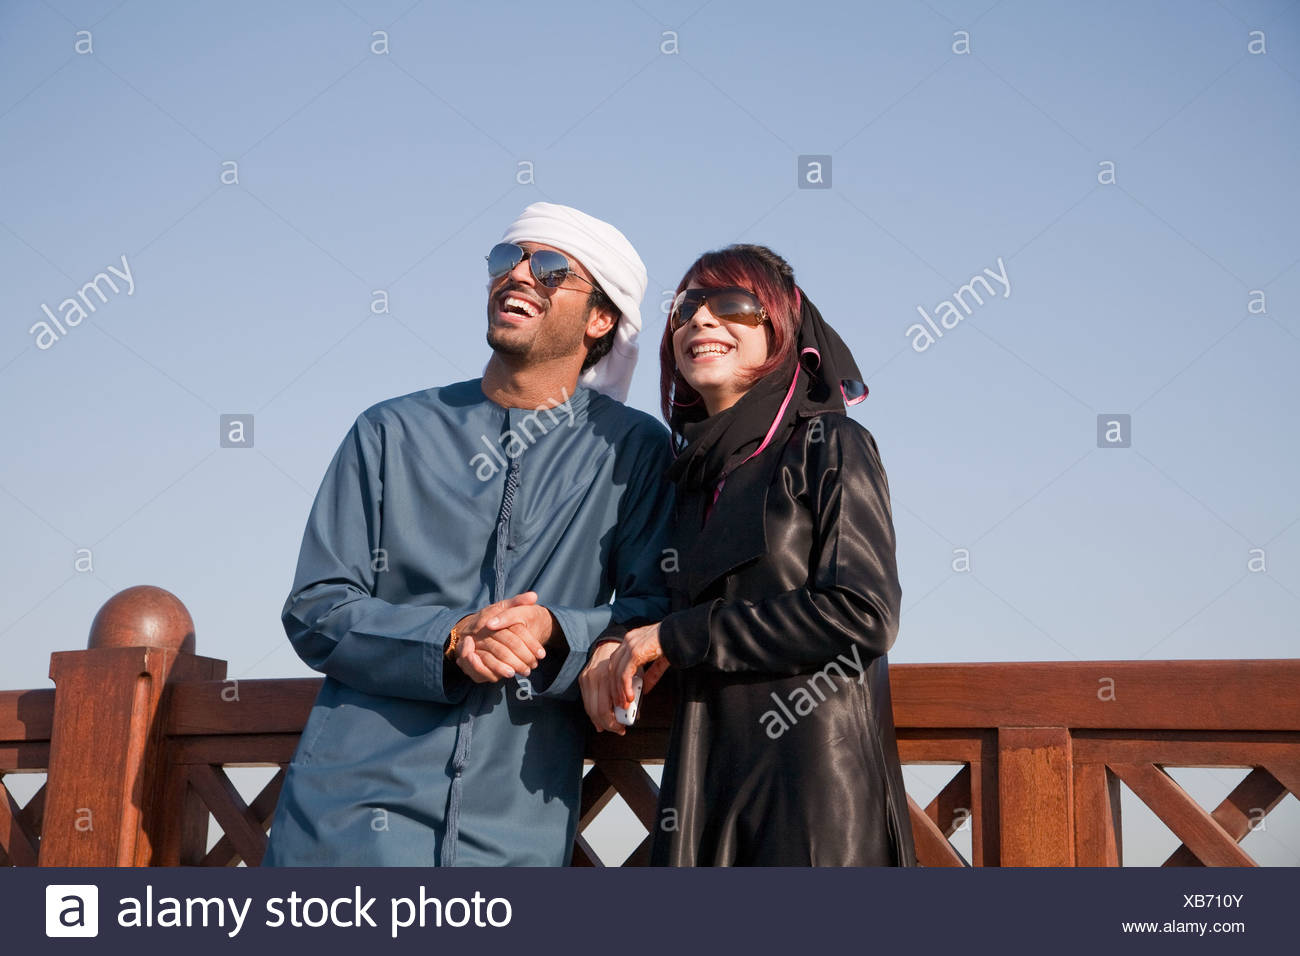 Middle Eastern people and fence, outdoors - Stock Image